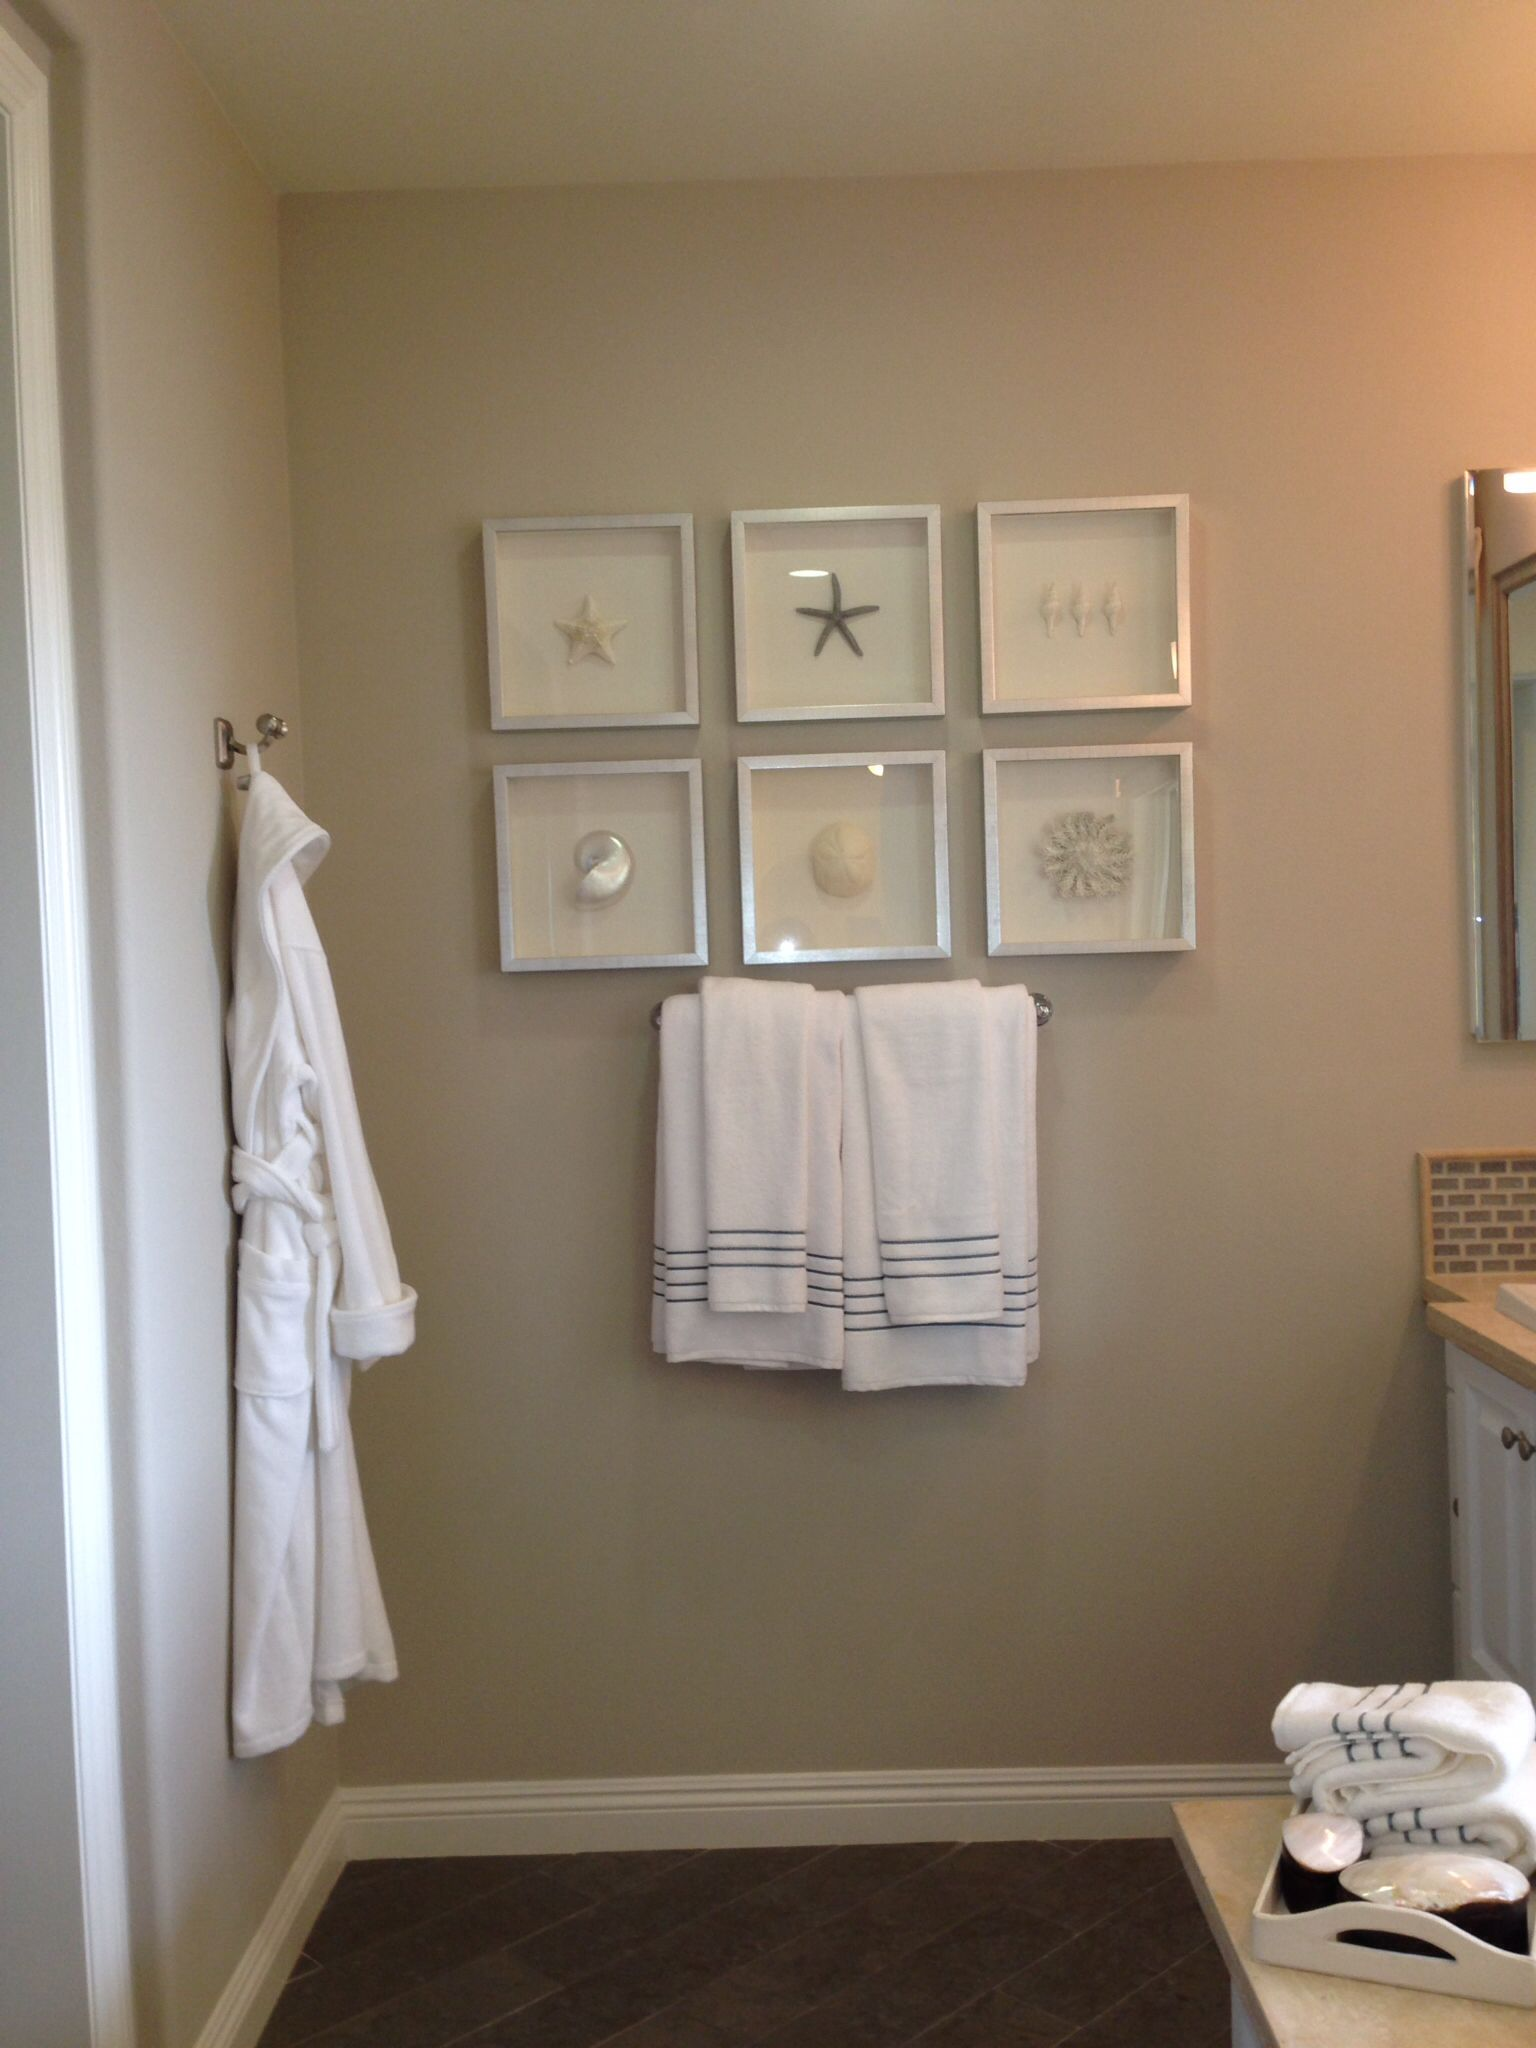 Bathroom beach decor framing ideas model home for Beach themed bathroom decor